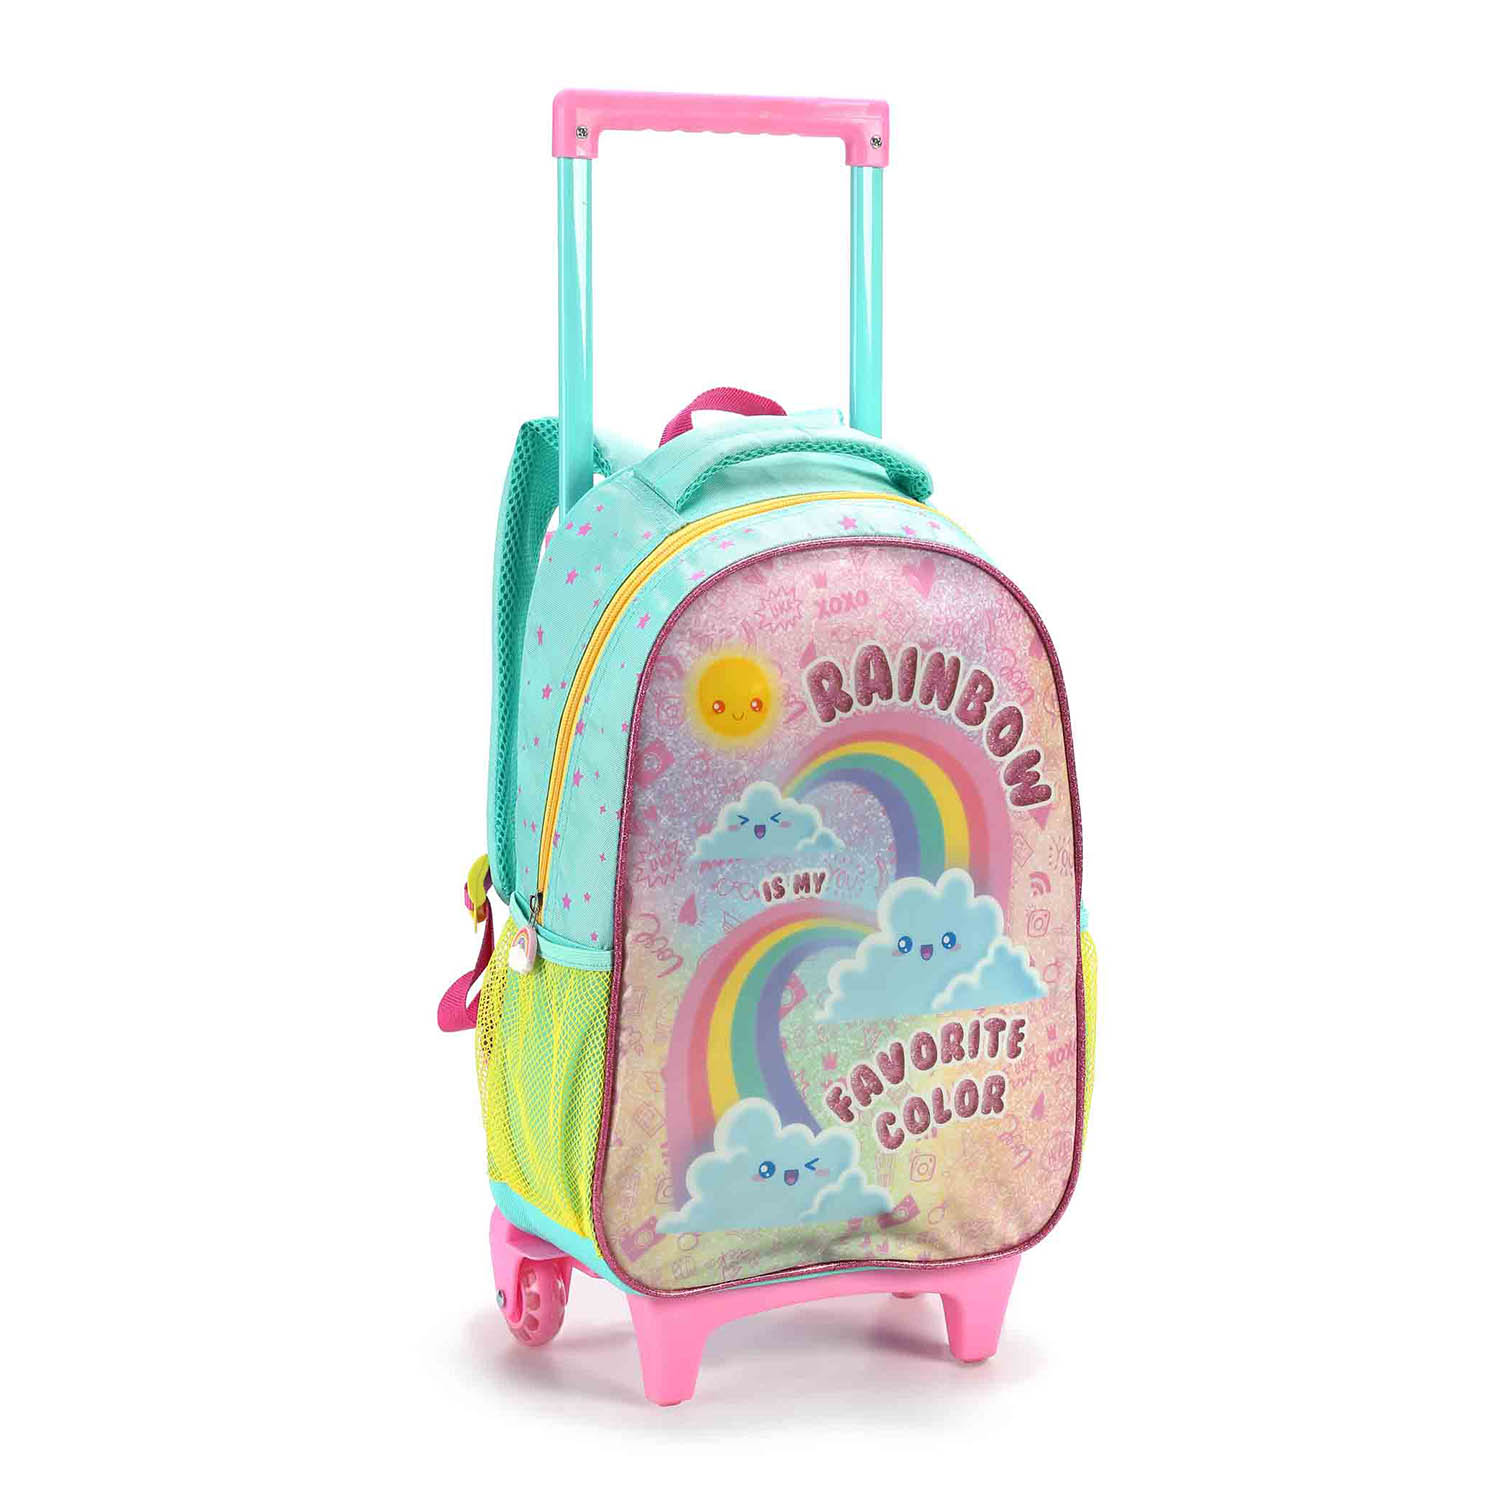 KIT ESCOLAR FEMININO ARCO IRIS - SEANITE